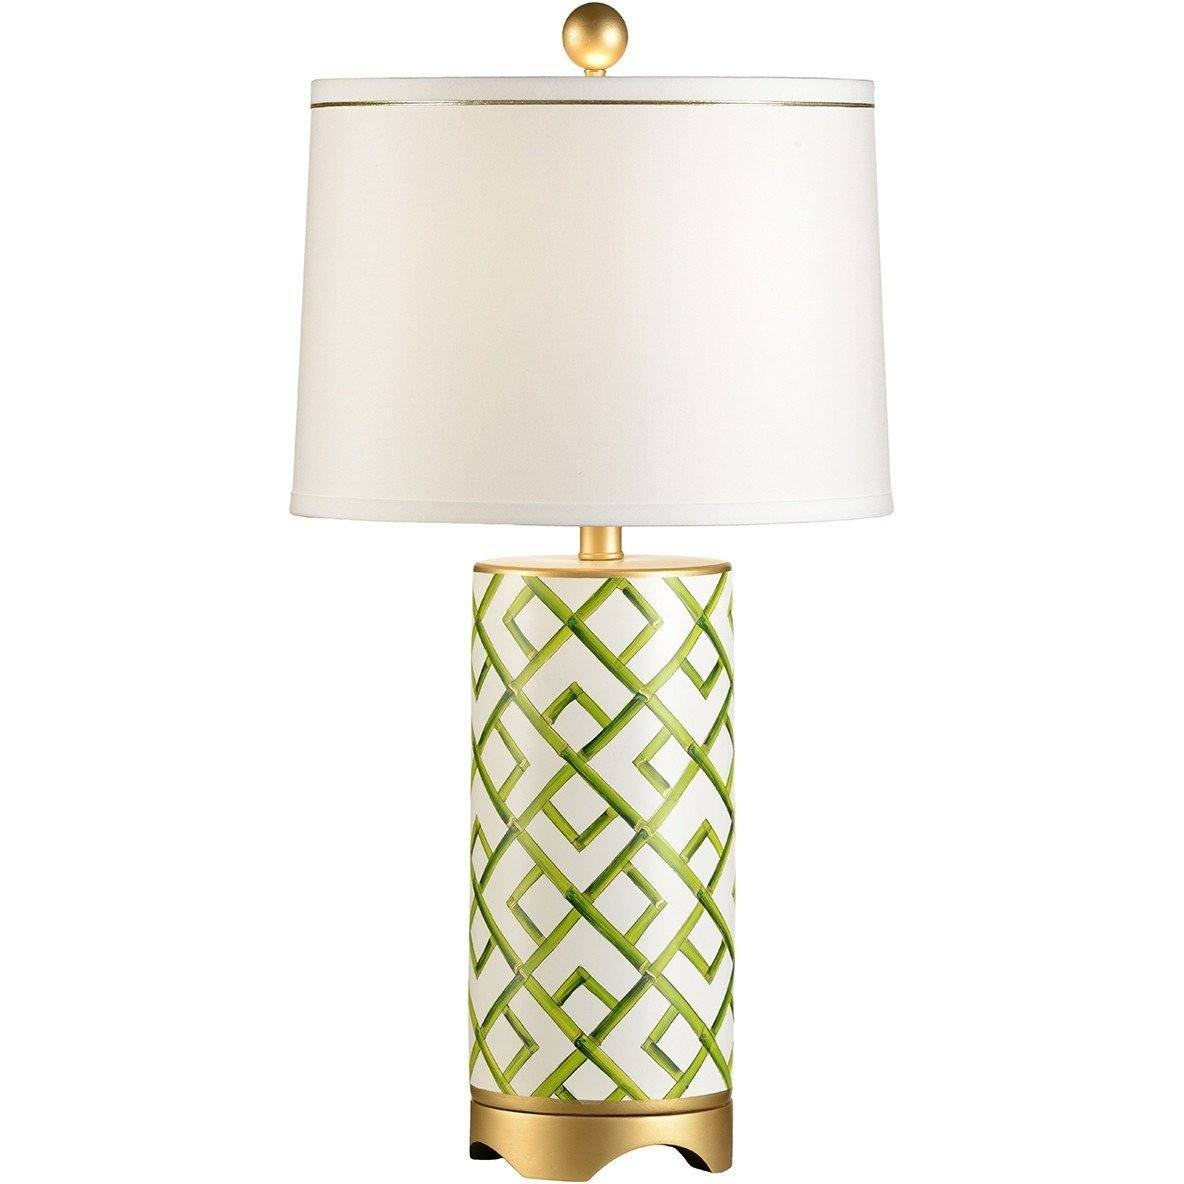 Chelsea house bamboo squares gold table lamp lovecup chelsea house bamboo squares gold table lamp 68562 geotapseo Gallery